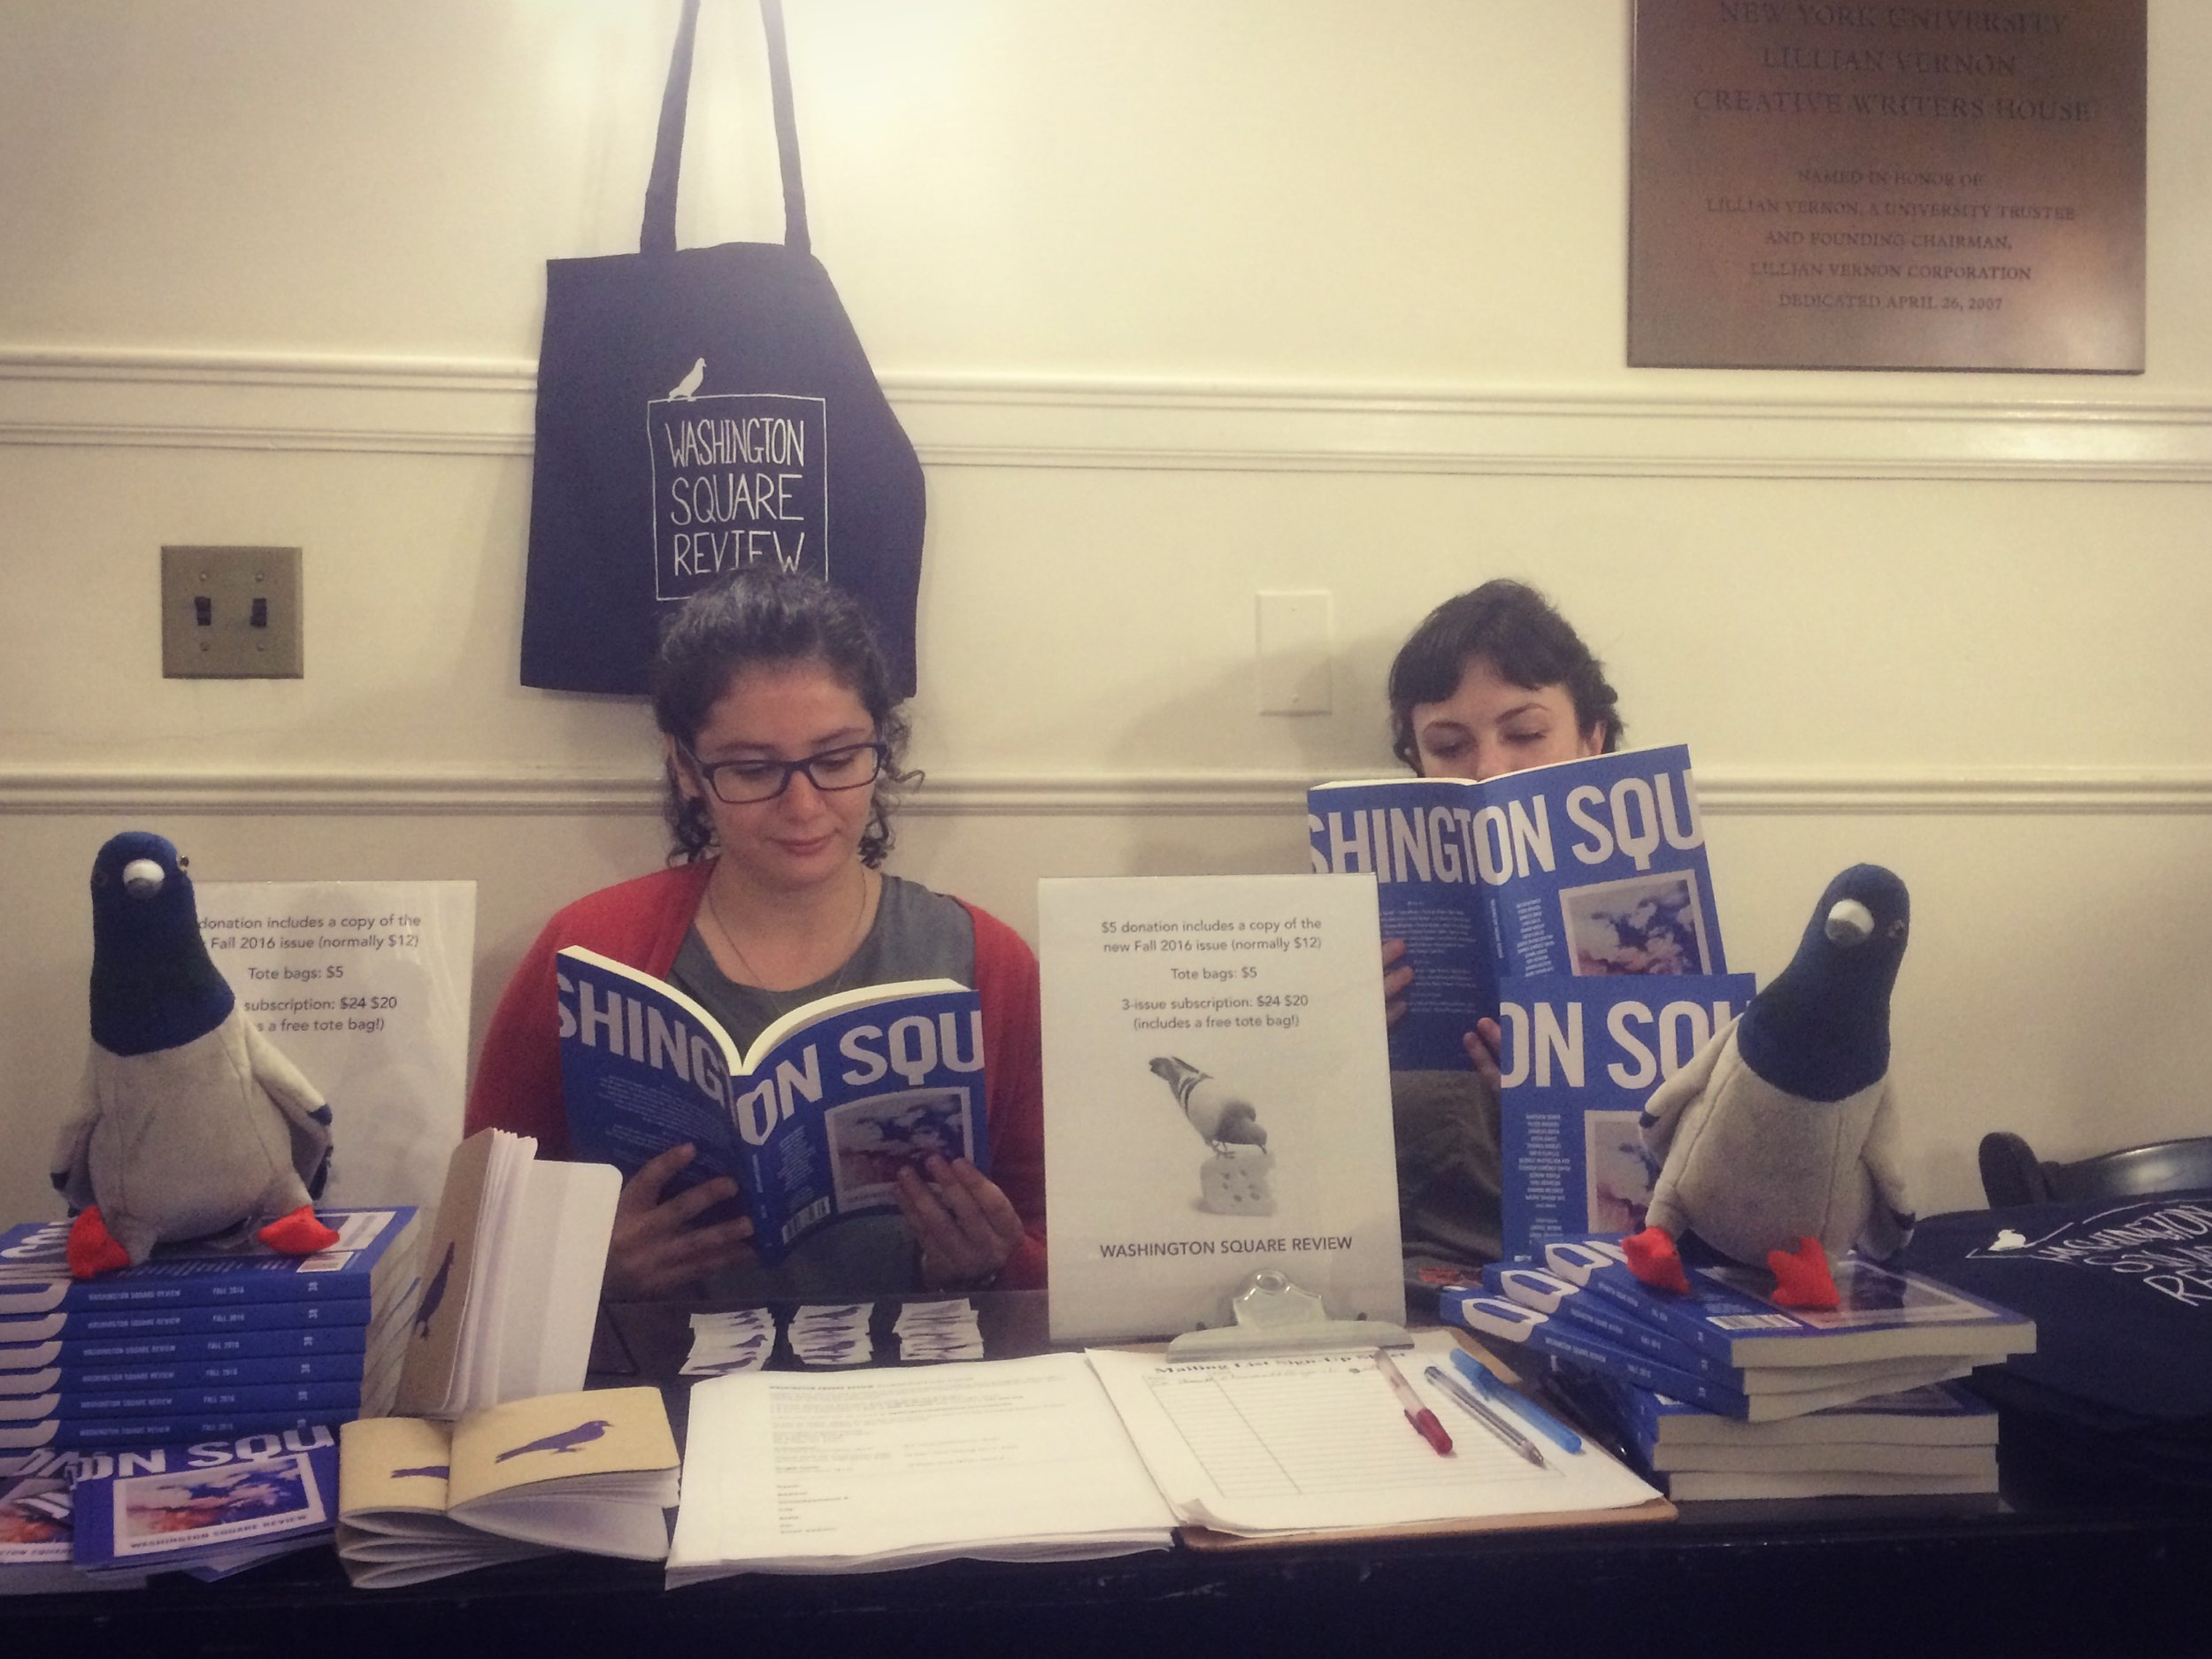 Fiction Editor Bruna Dantas Lobato and Assistant Poetry Editor Maggie Millner with issue 38 and lots of other new Washington Square goodies.